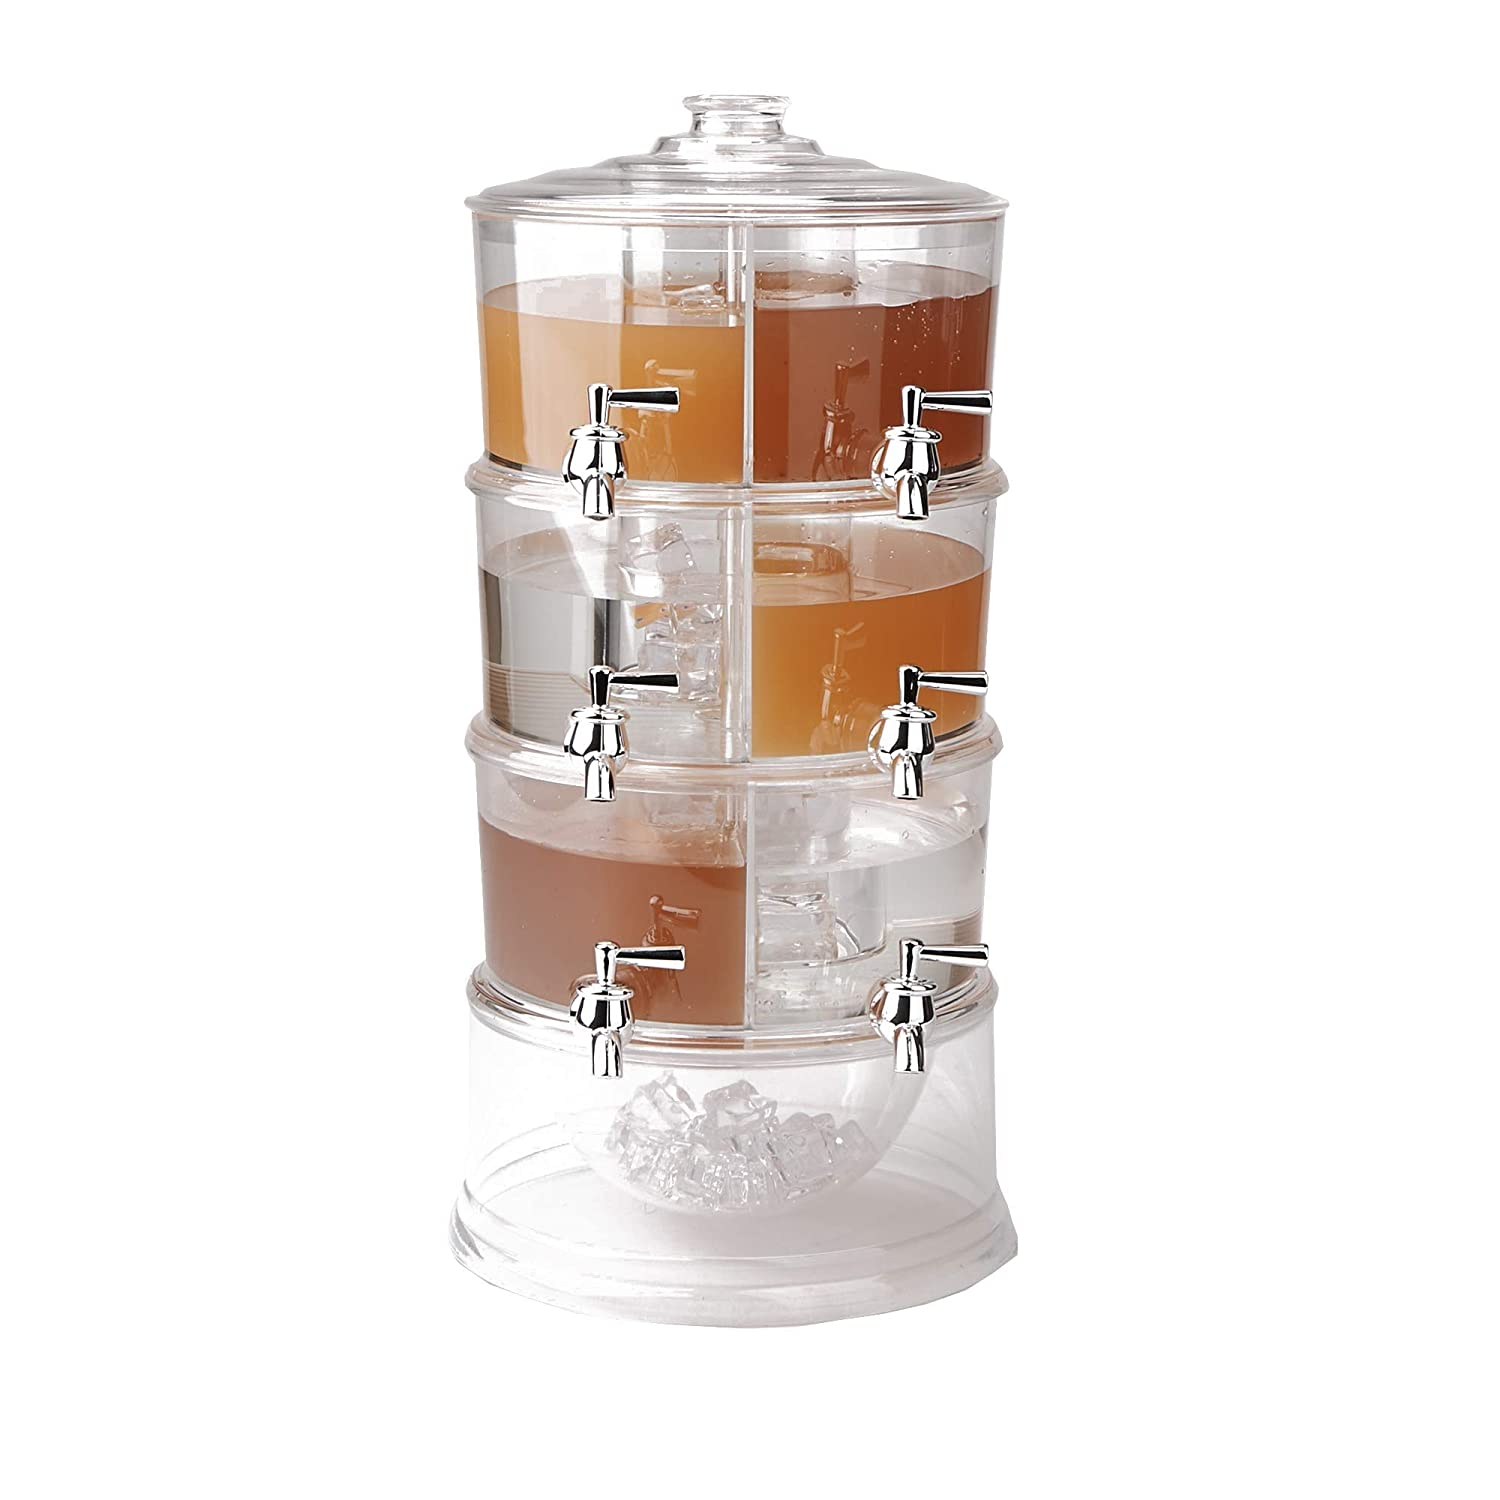 Mind Reader BEVD6C-CLR Dispenser, 3 Tier Stackable Drink Holder with Lids, Clear Acrylic 6 Compartment Beverage Display with Spigots, One Size